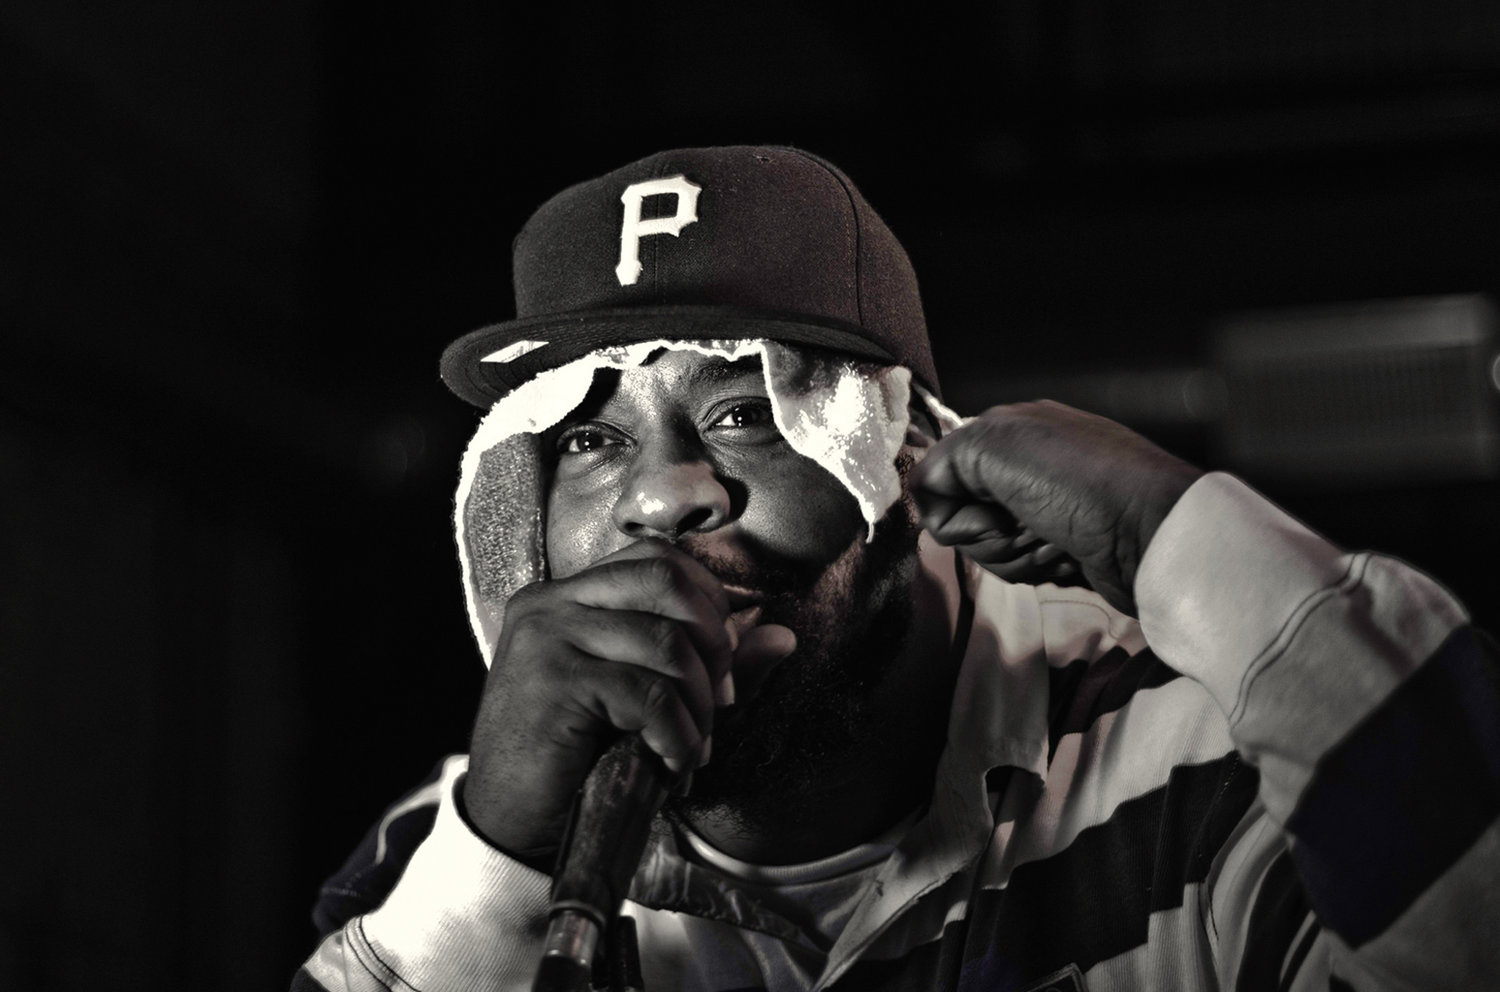 SEAN PRICE TRIBUTE TOUR FEAT ROCK of HELTAH SKELTAH & BERNADETTE PRICE – December